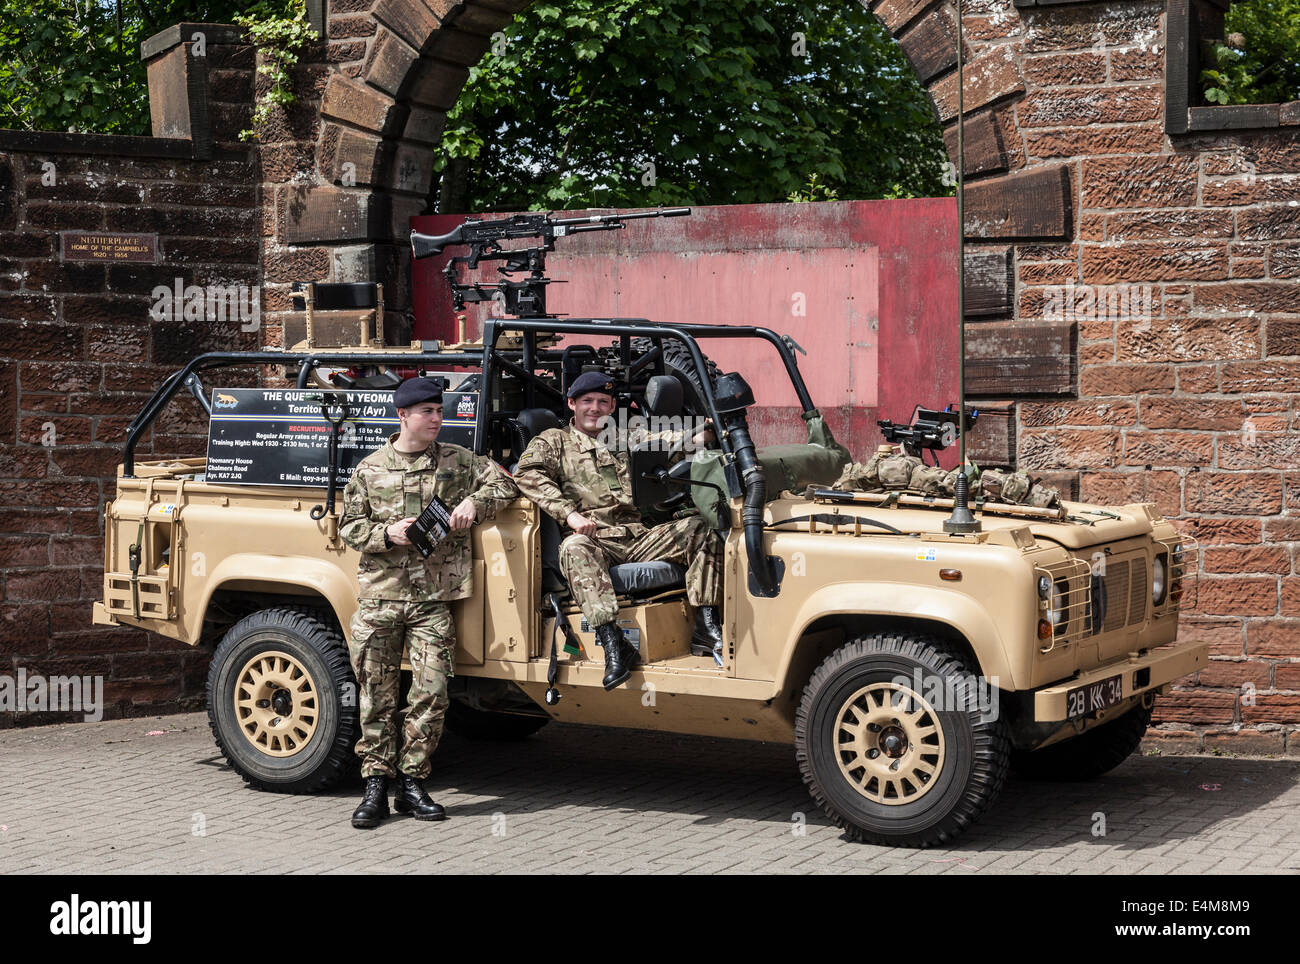 Members of the Queen's Own Yeomanry - Ayrshire (Earl of Carrick's Own) Squadron of the Territorial army - Stock Image